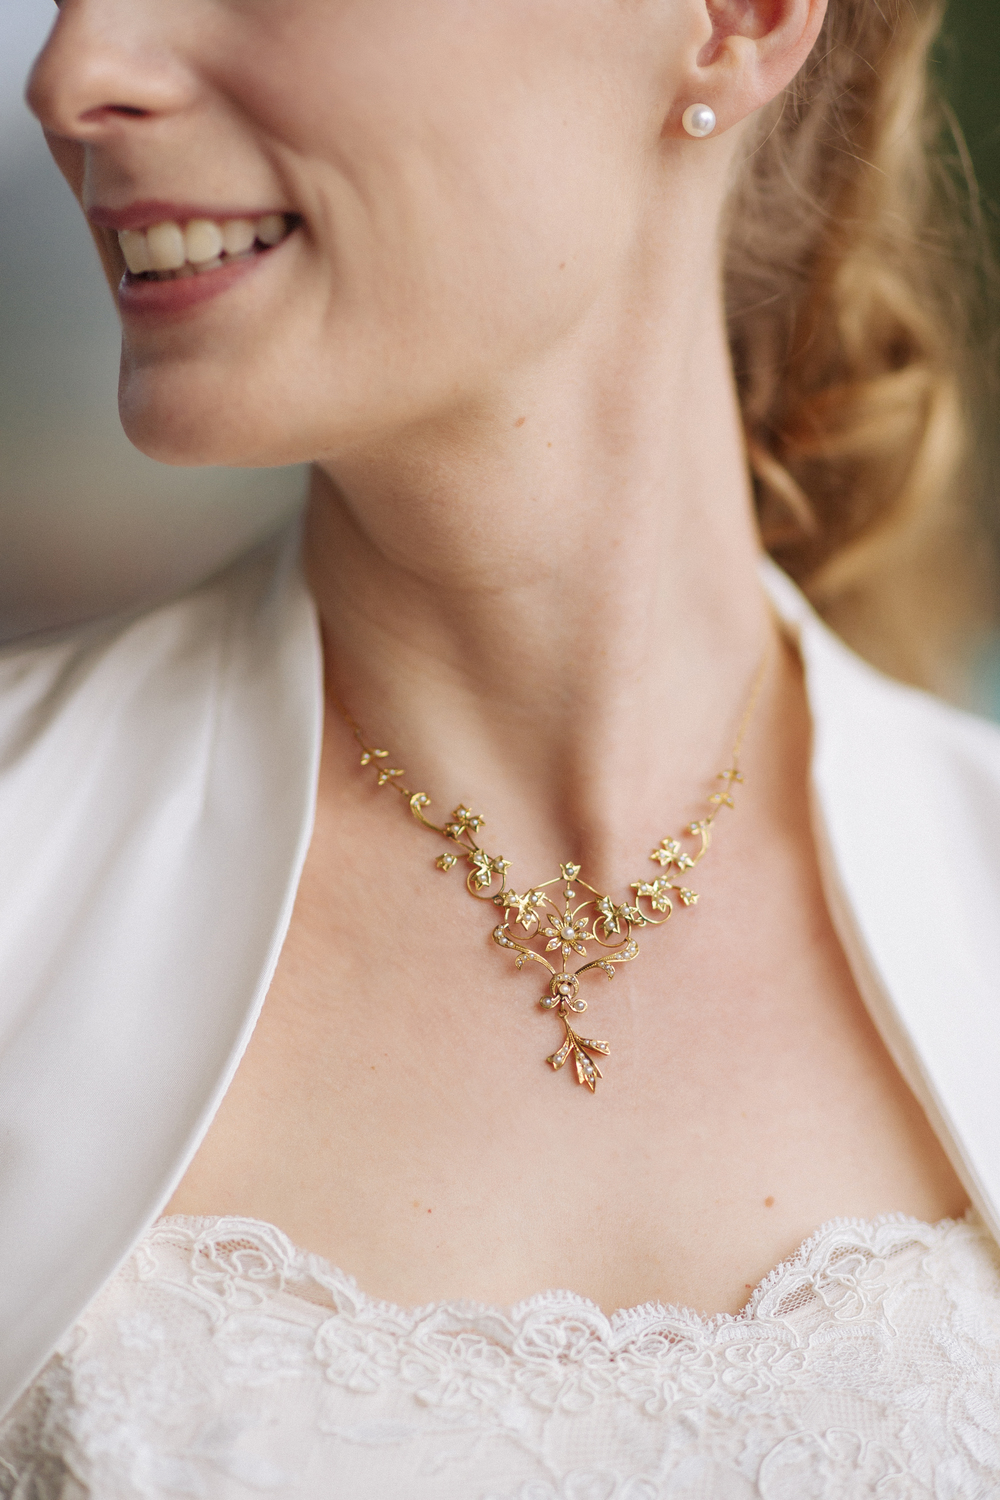 bride-necklace-gold-flowers.JPG